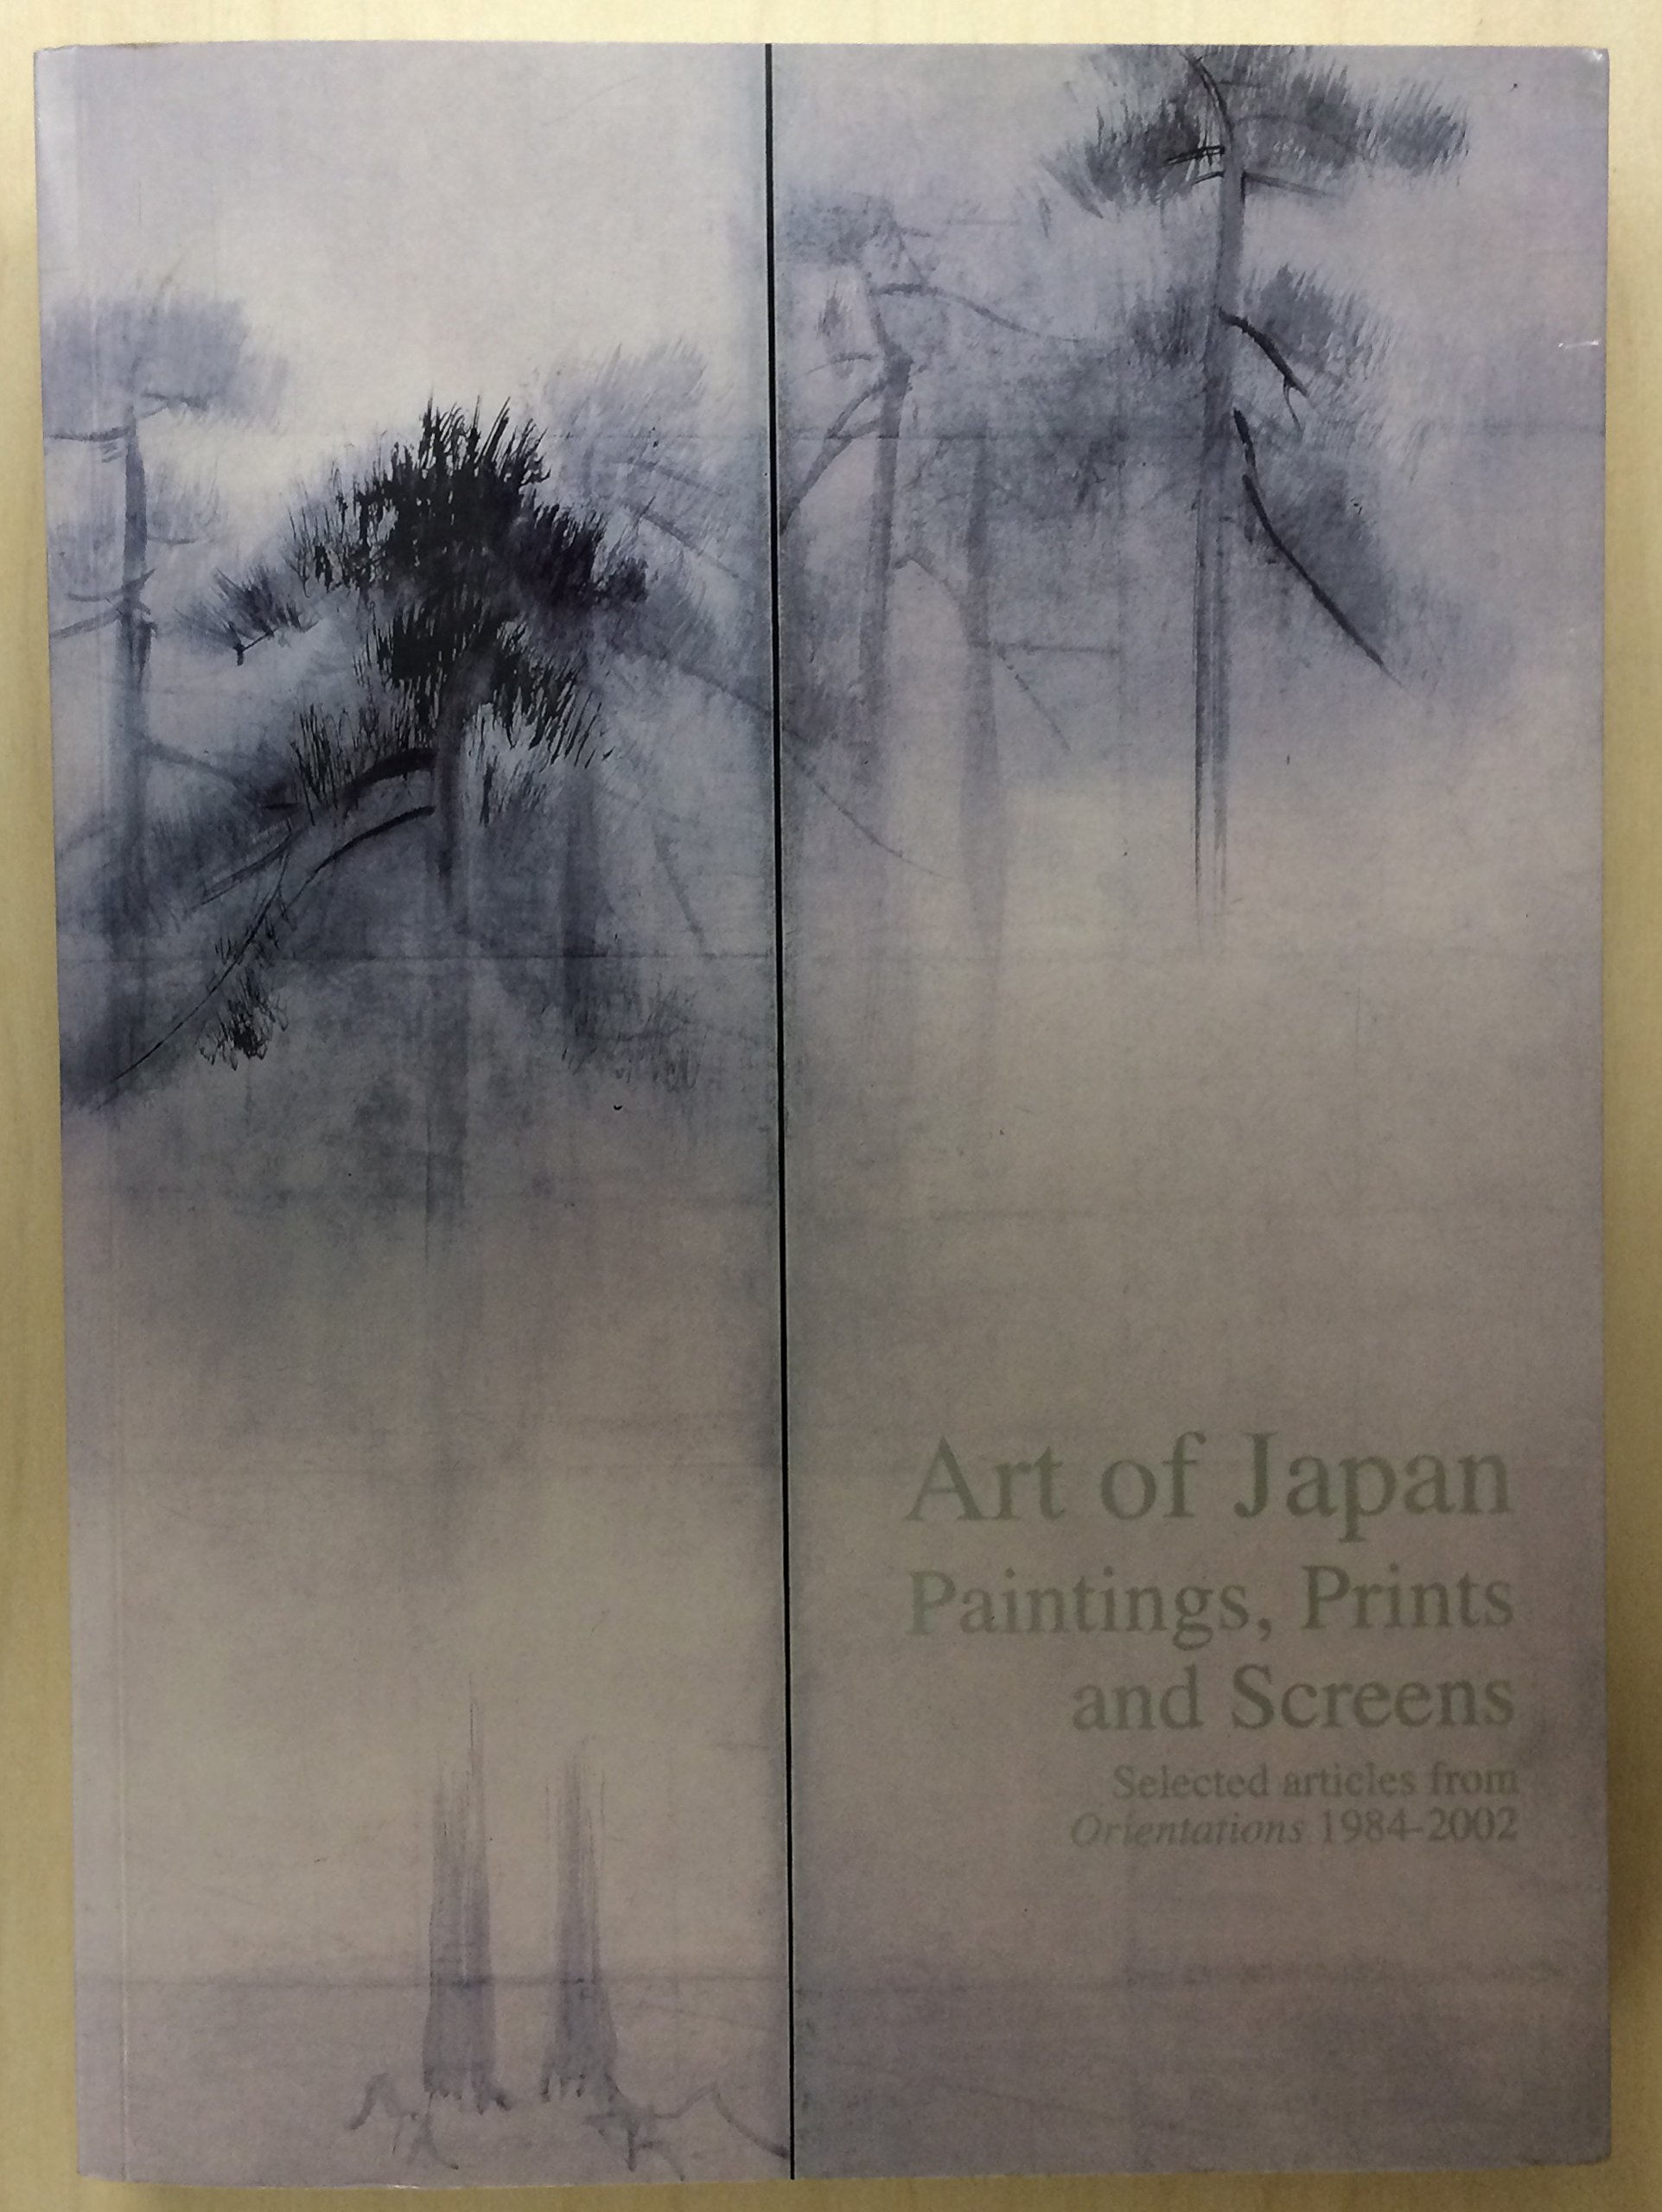 Download Art of Japan: Paintings, Prints and Screens - Selected Articles from Orientations 1984-2002 pdf epub